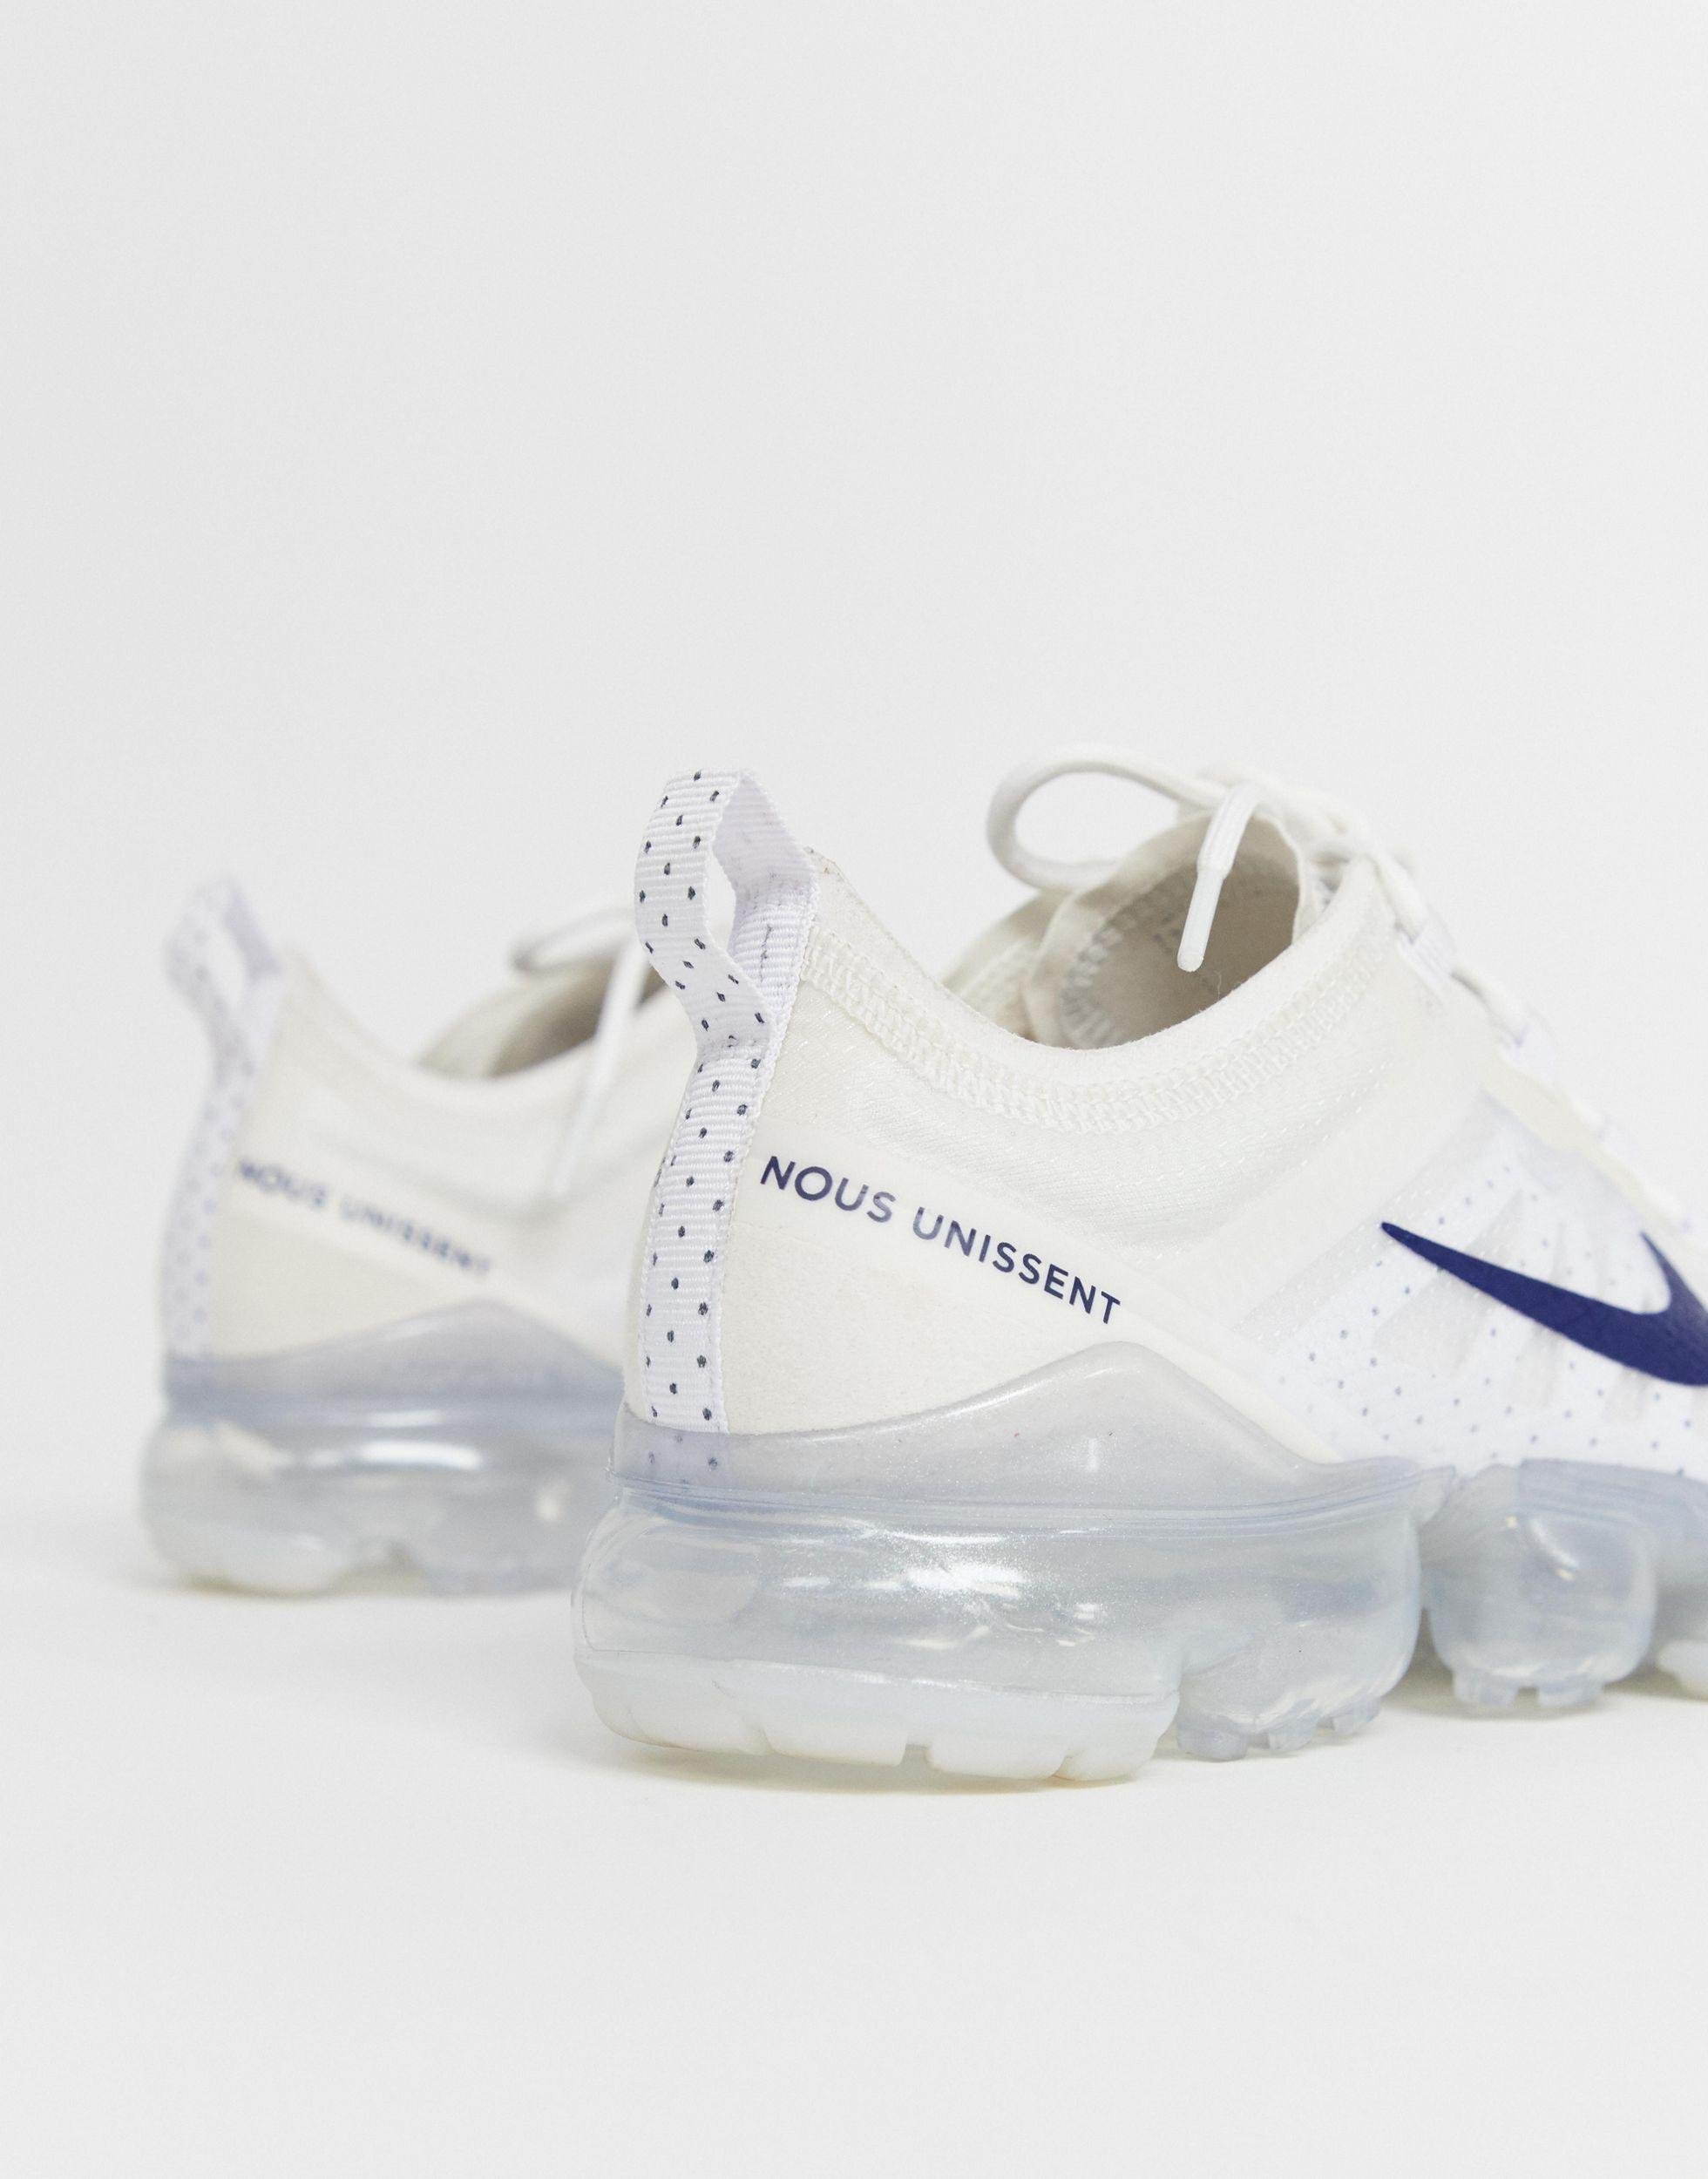 Nike Rubber And Navy Vapormax World Cup